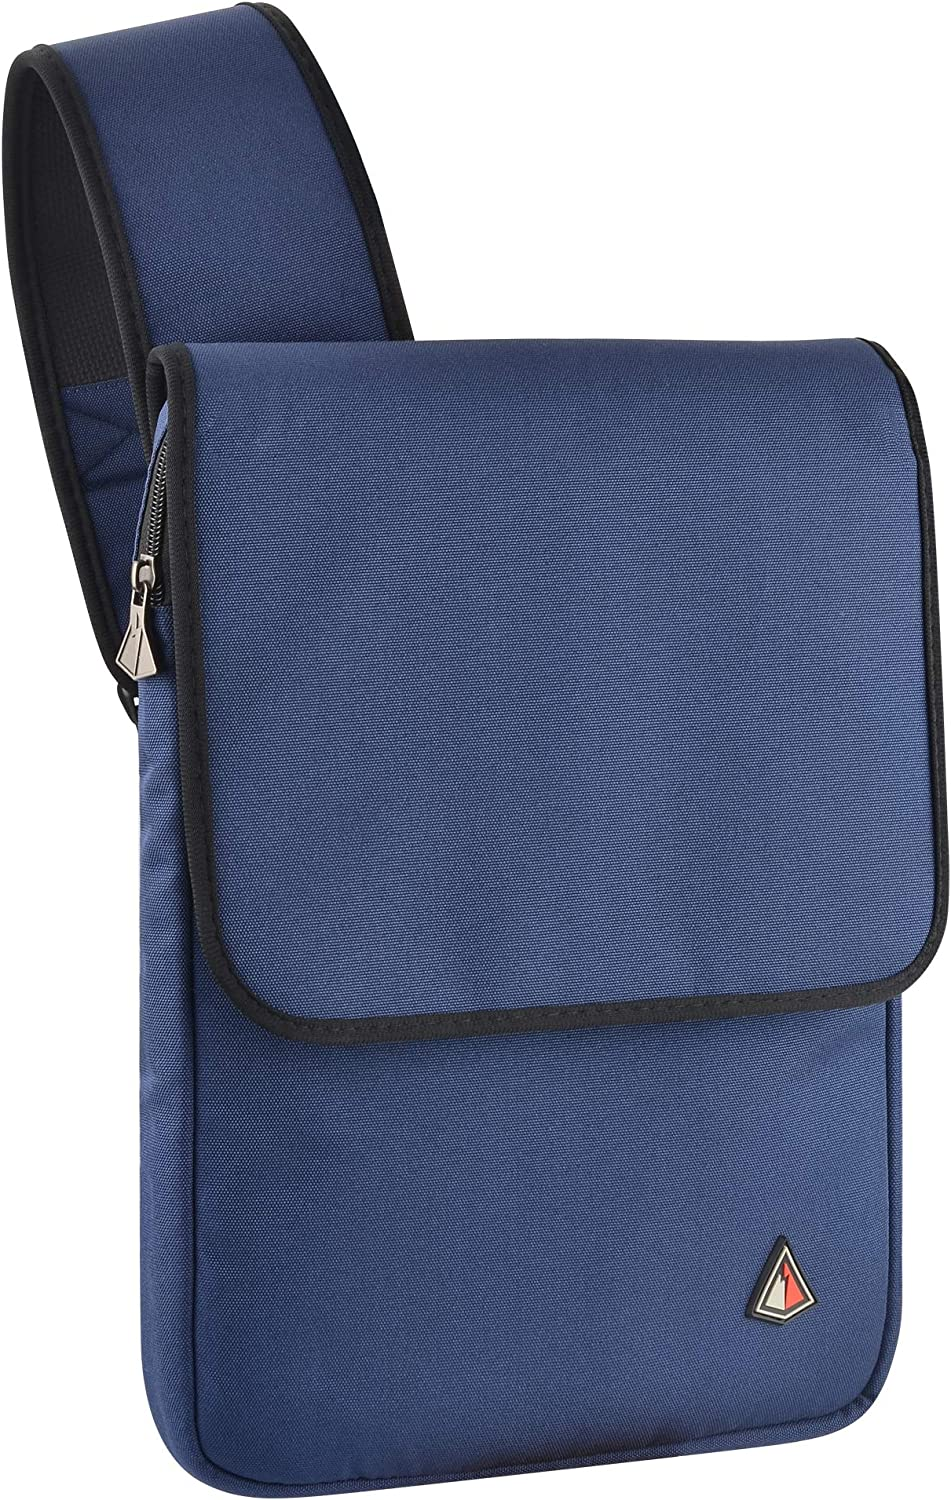 TXEsign Cross Body Day Pack 13-15 inch Laptop Sleeve Shoulder Bag for MacBook